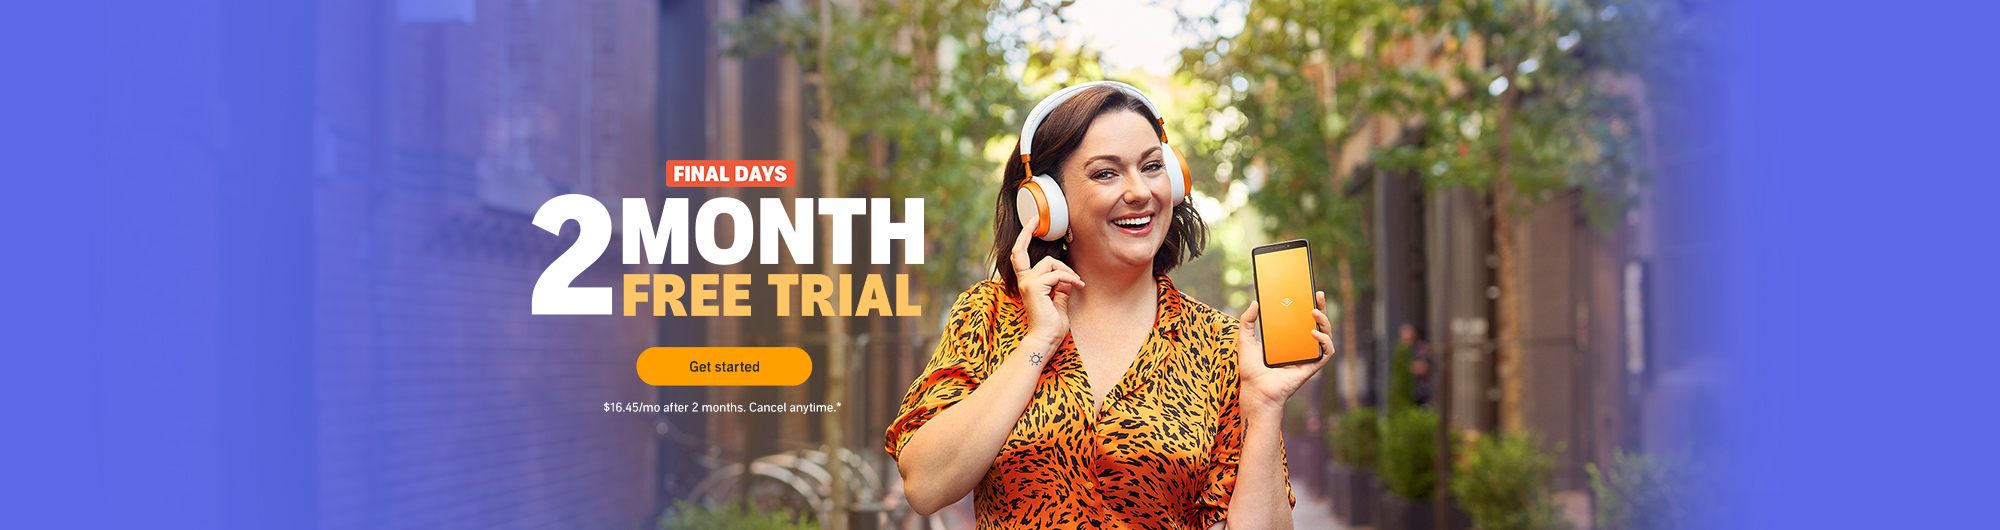 It's the final days to get a free 2-month trial of Audible. New members only. After 2 months, Audible is $16.45. Cancel anytime.